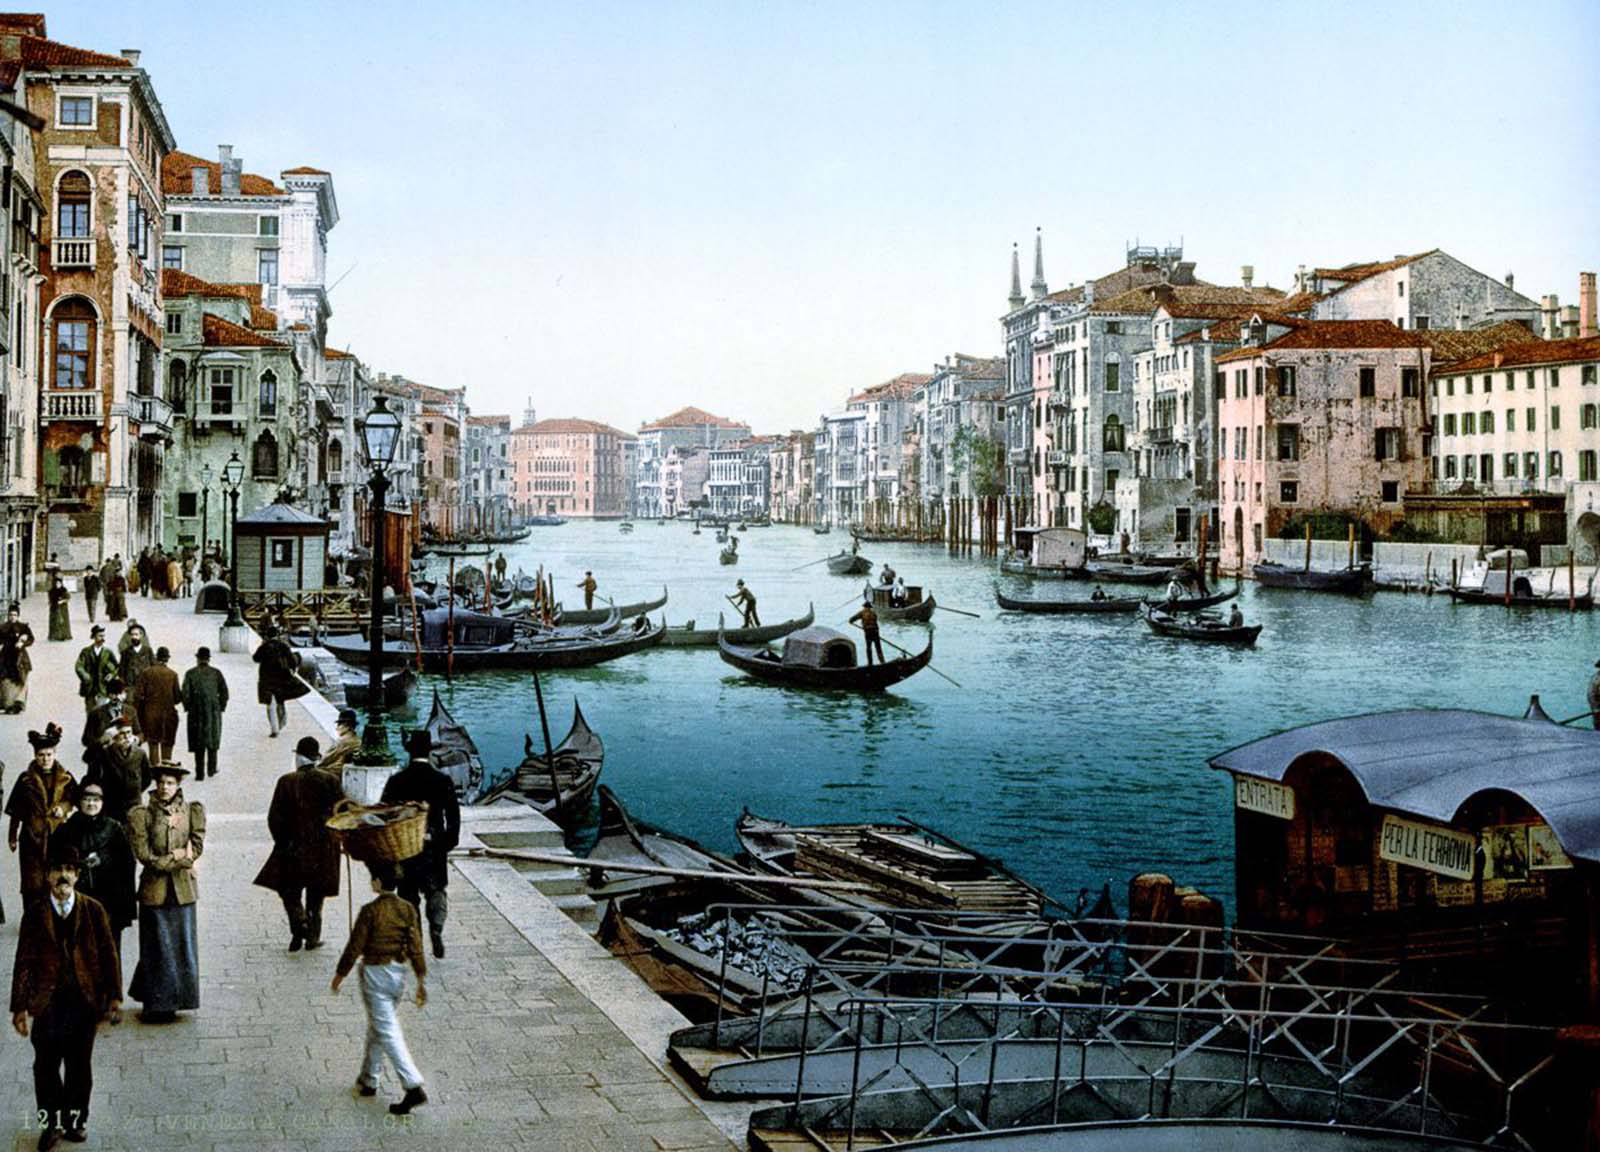 venice-in-beautiful-old-color-images-1890_15.jpg